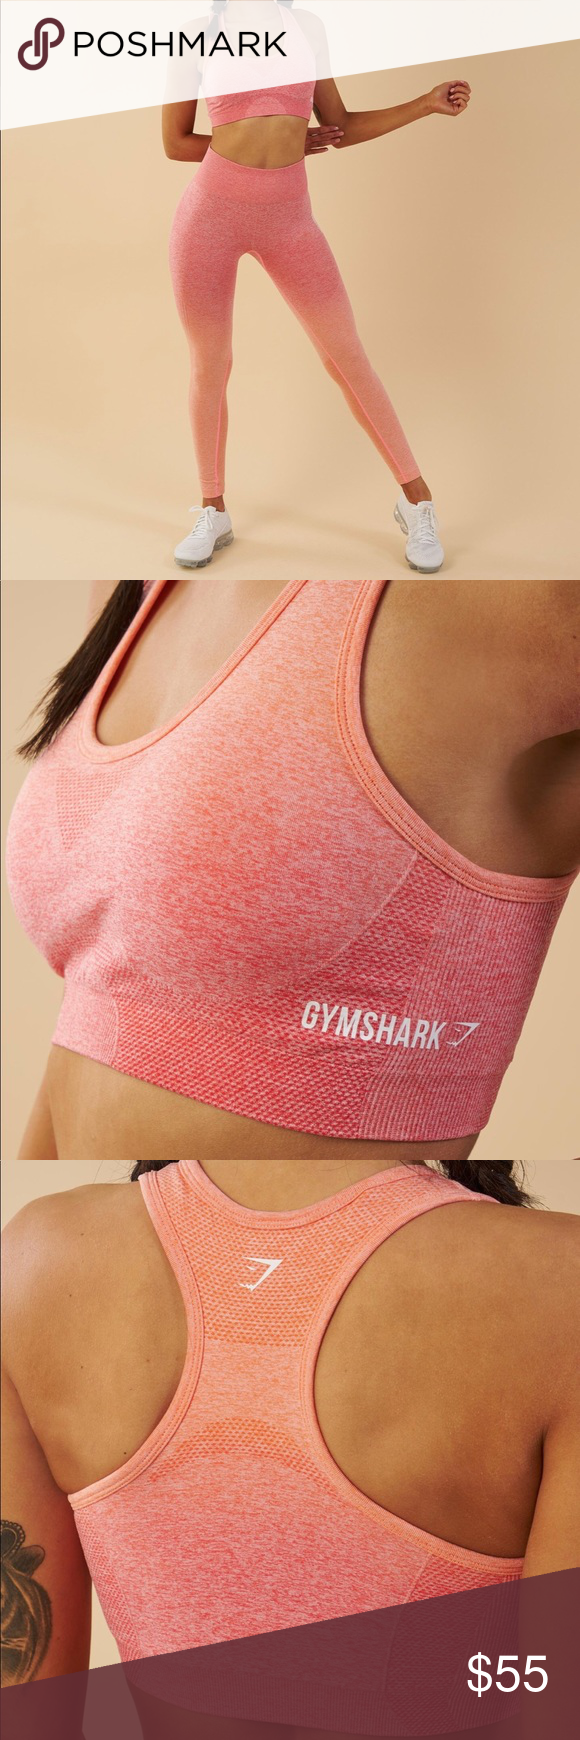 2a95cf06cf GYMSHARK - OMBRE SEAMLESS SPORTS BRA PEACH CORAL BRAND NEW Combining  beautiful design with innovative Seamless